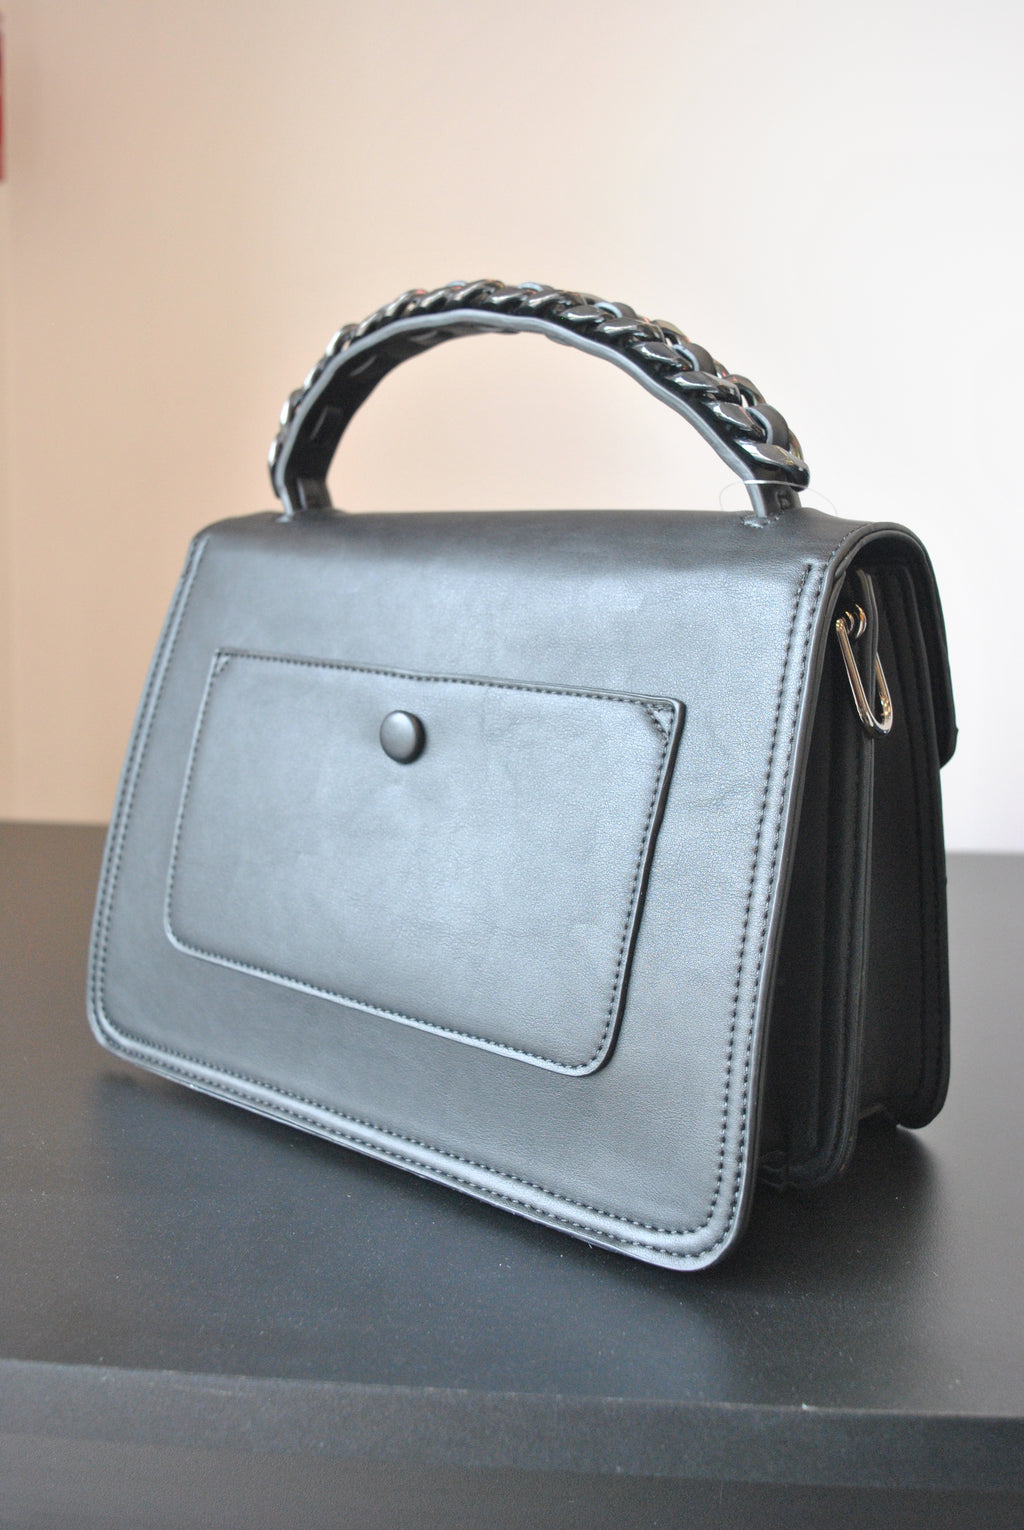 BLACK FAUX LEATHER SATCHEL / CROSSBODY BACK WITH CHAIN DETAILS